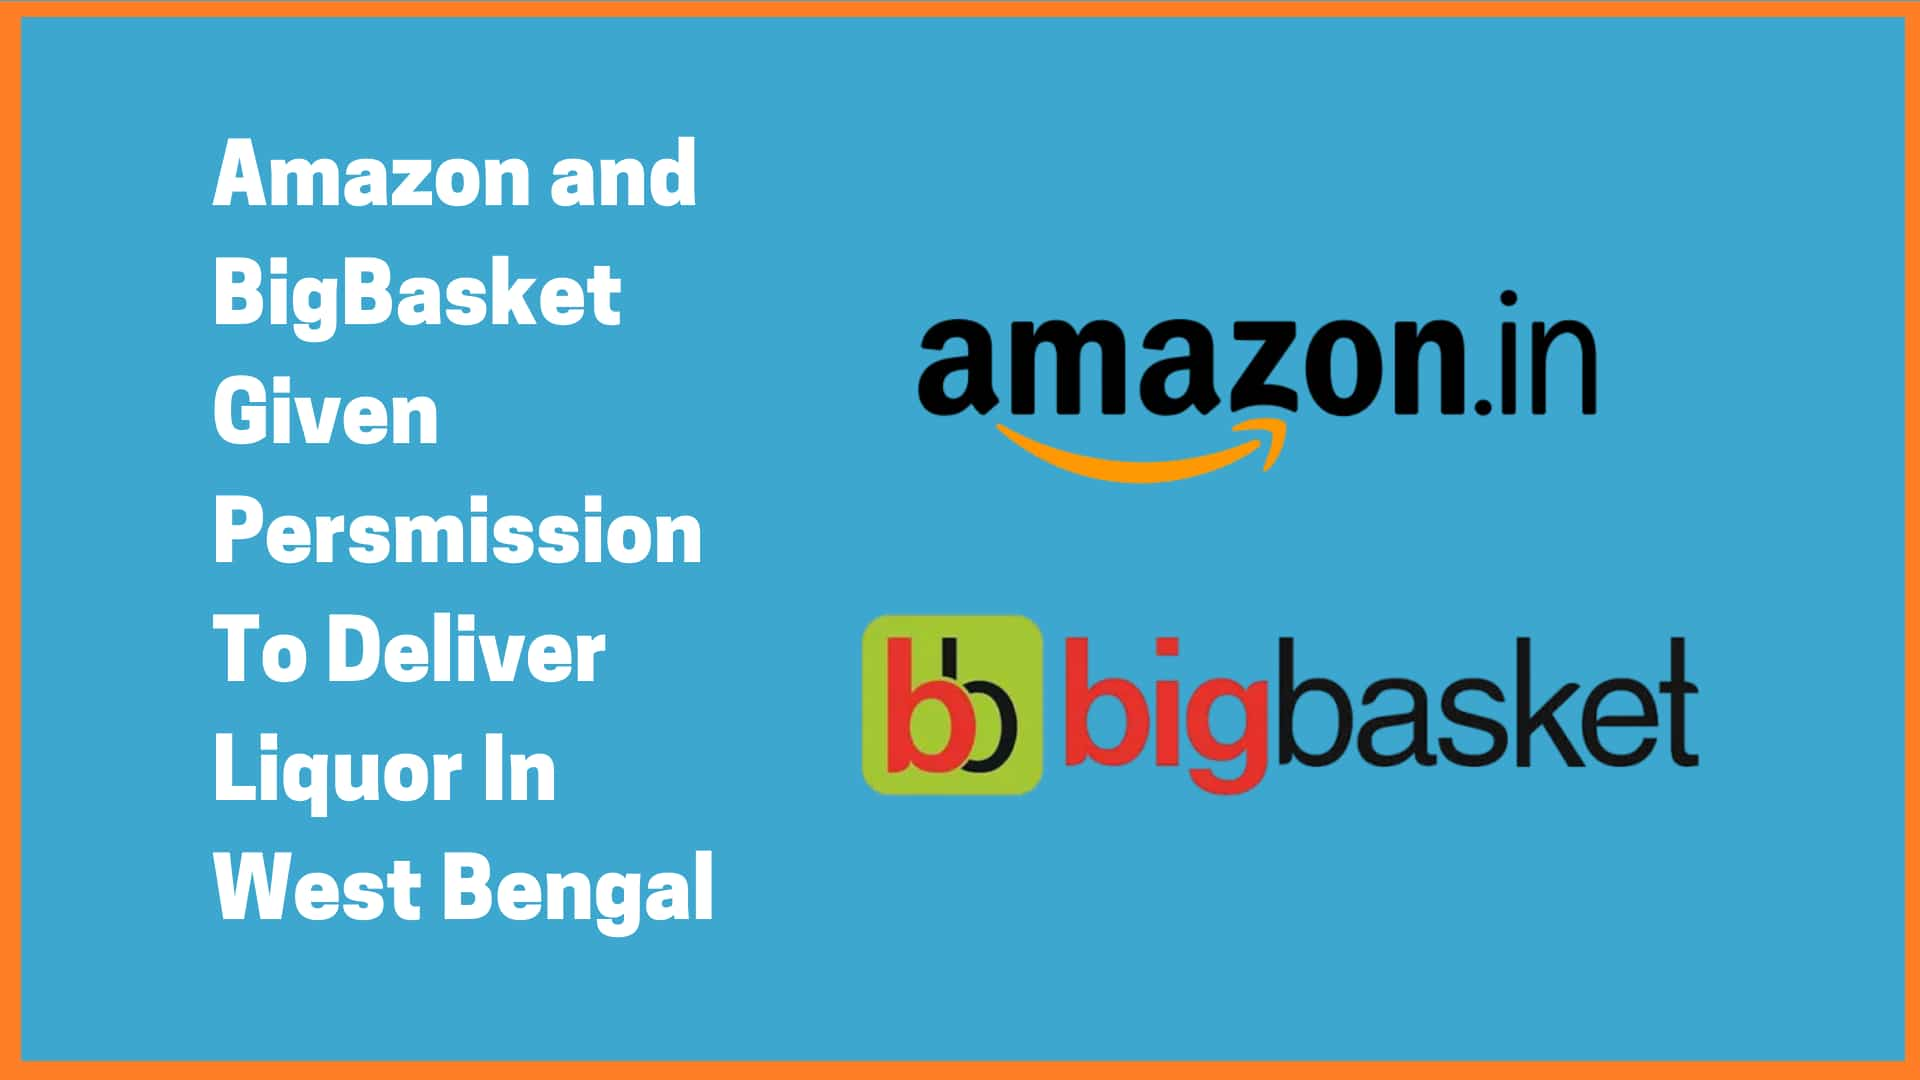 Amazon And BigBasket Approved For Home Delivery Of Liquor In West Bengal